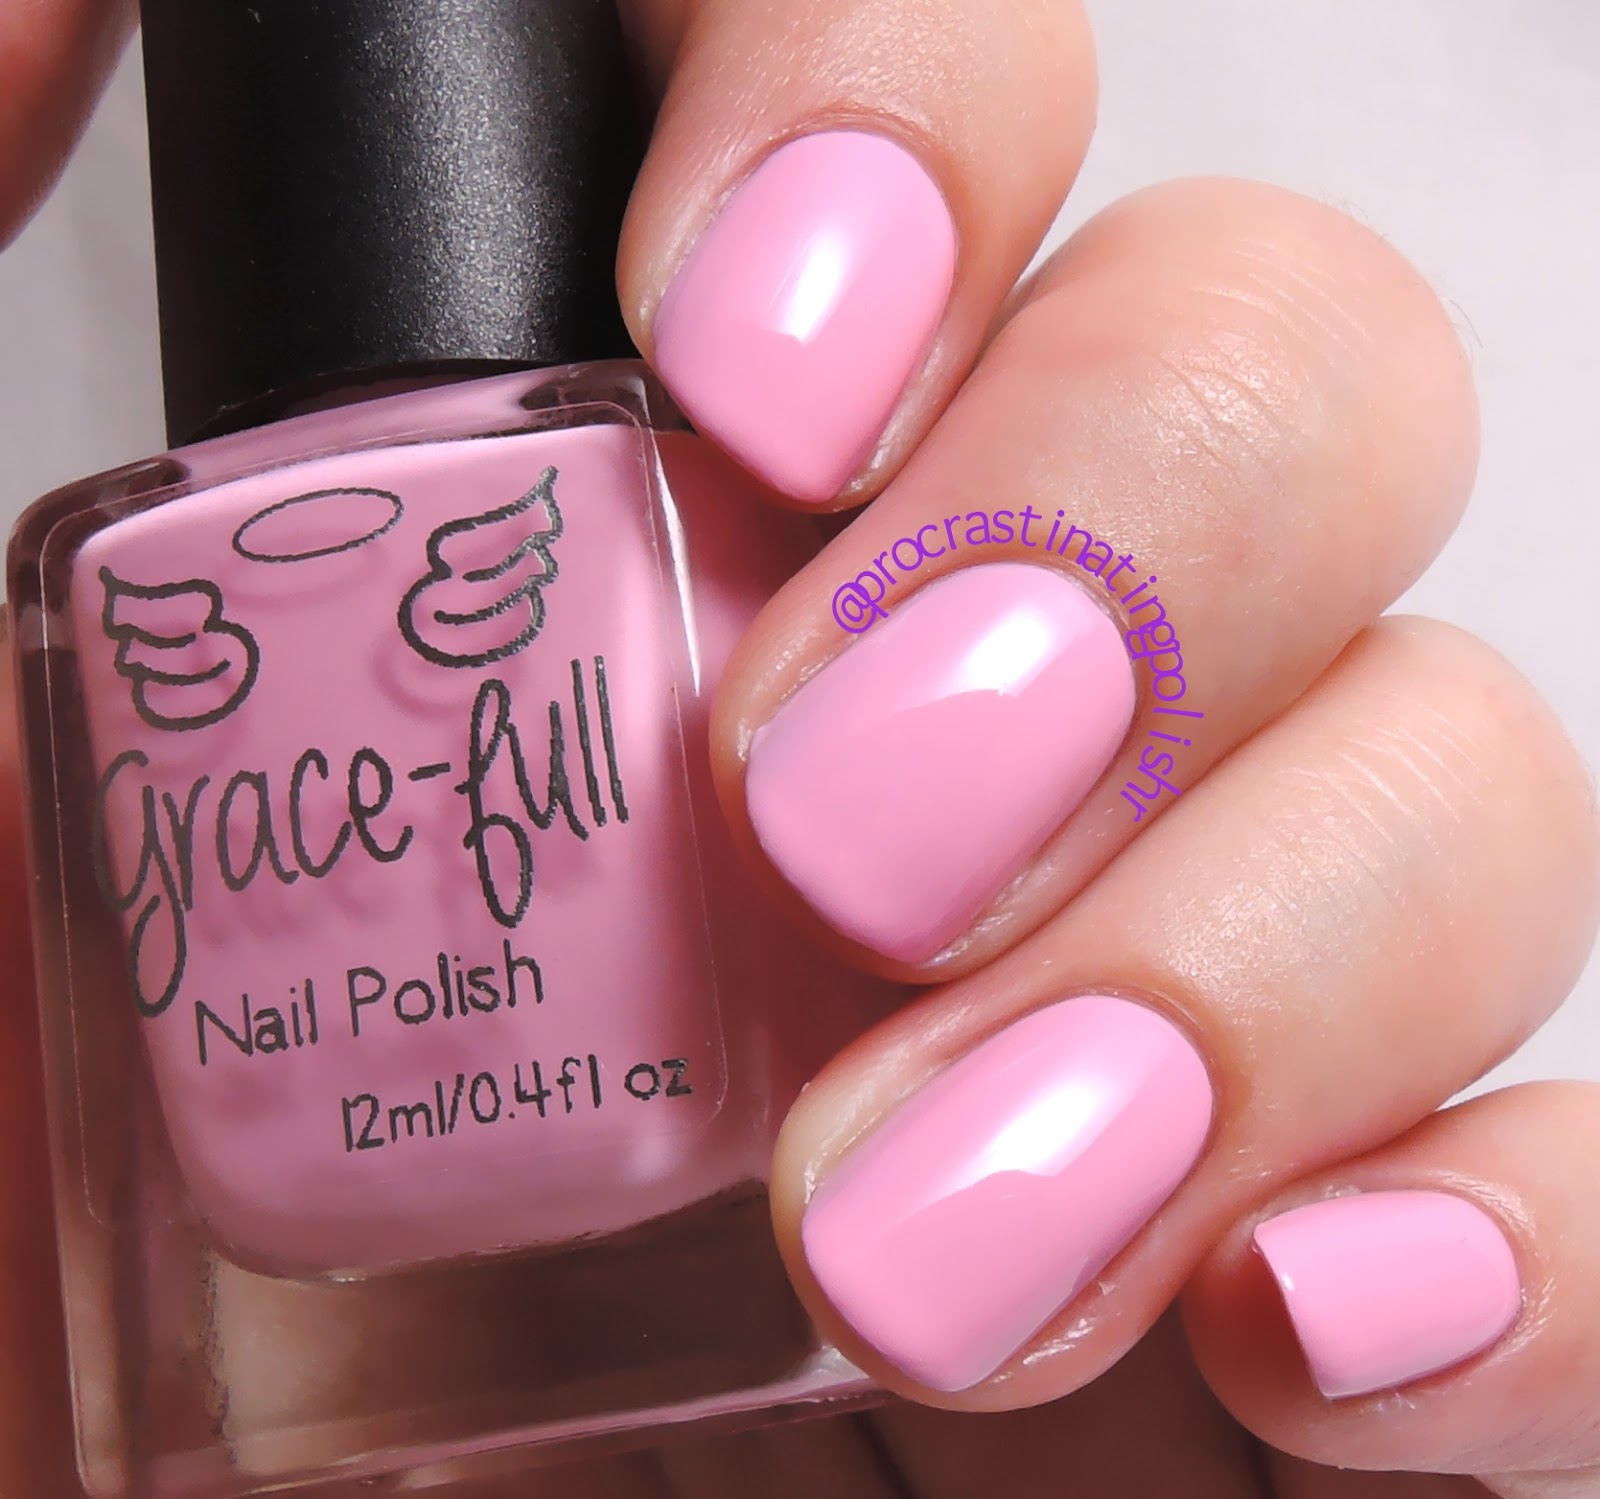 Grace-full Nail Polish - Emma | Dreamy Beach